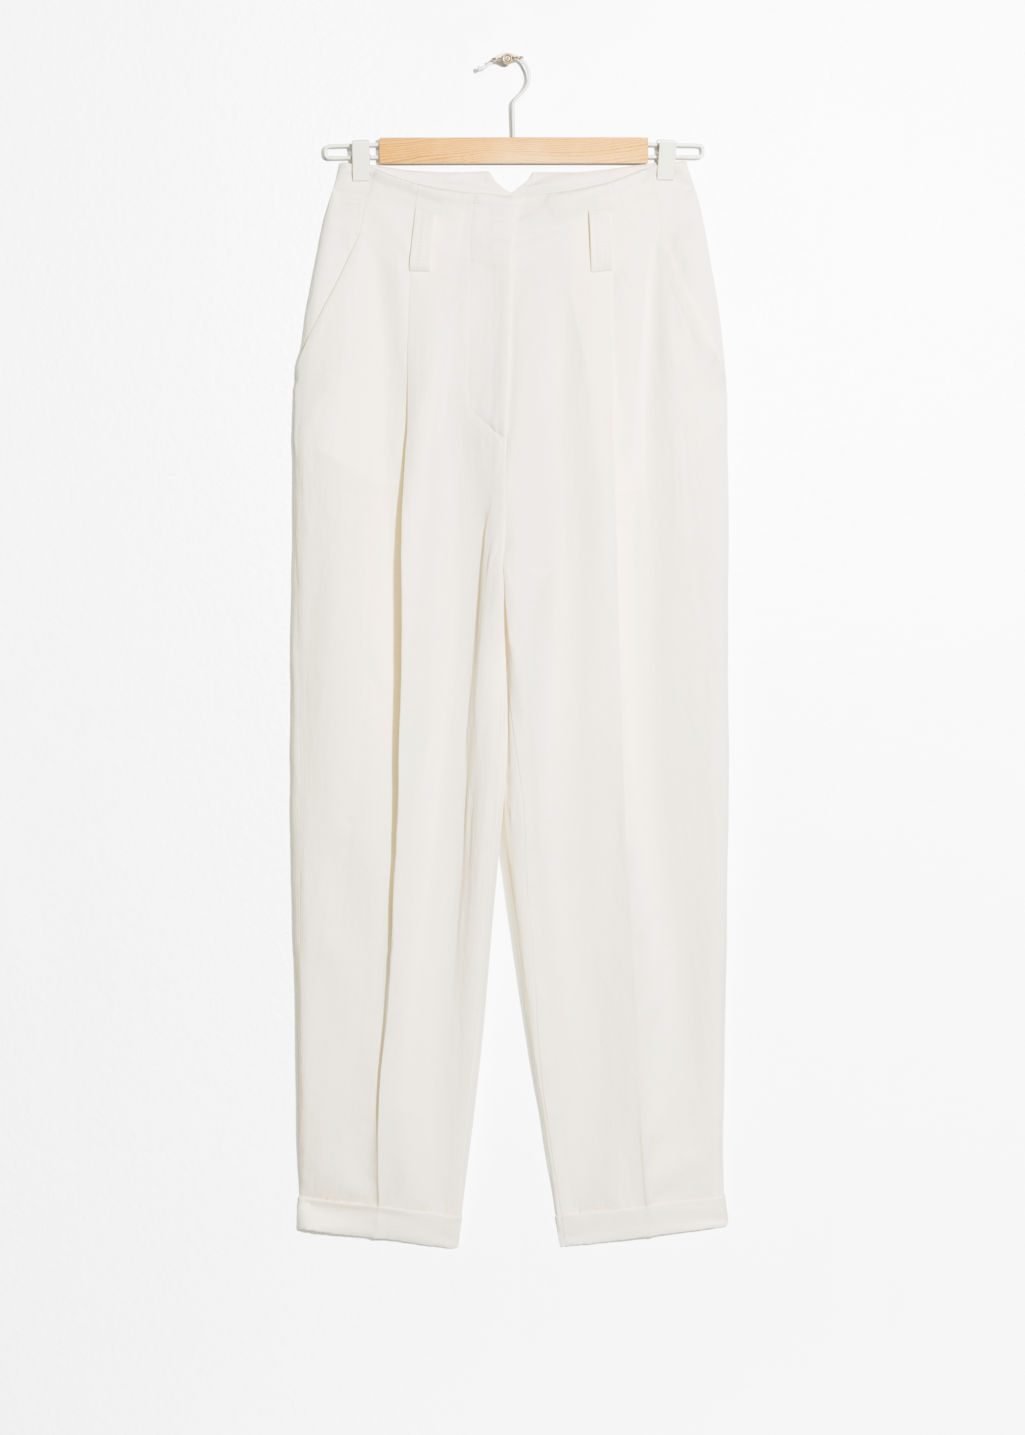 6198b08b7f4 Tapered Linen Blend Pants - White - Ivory Capsule -   Other Stories